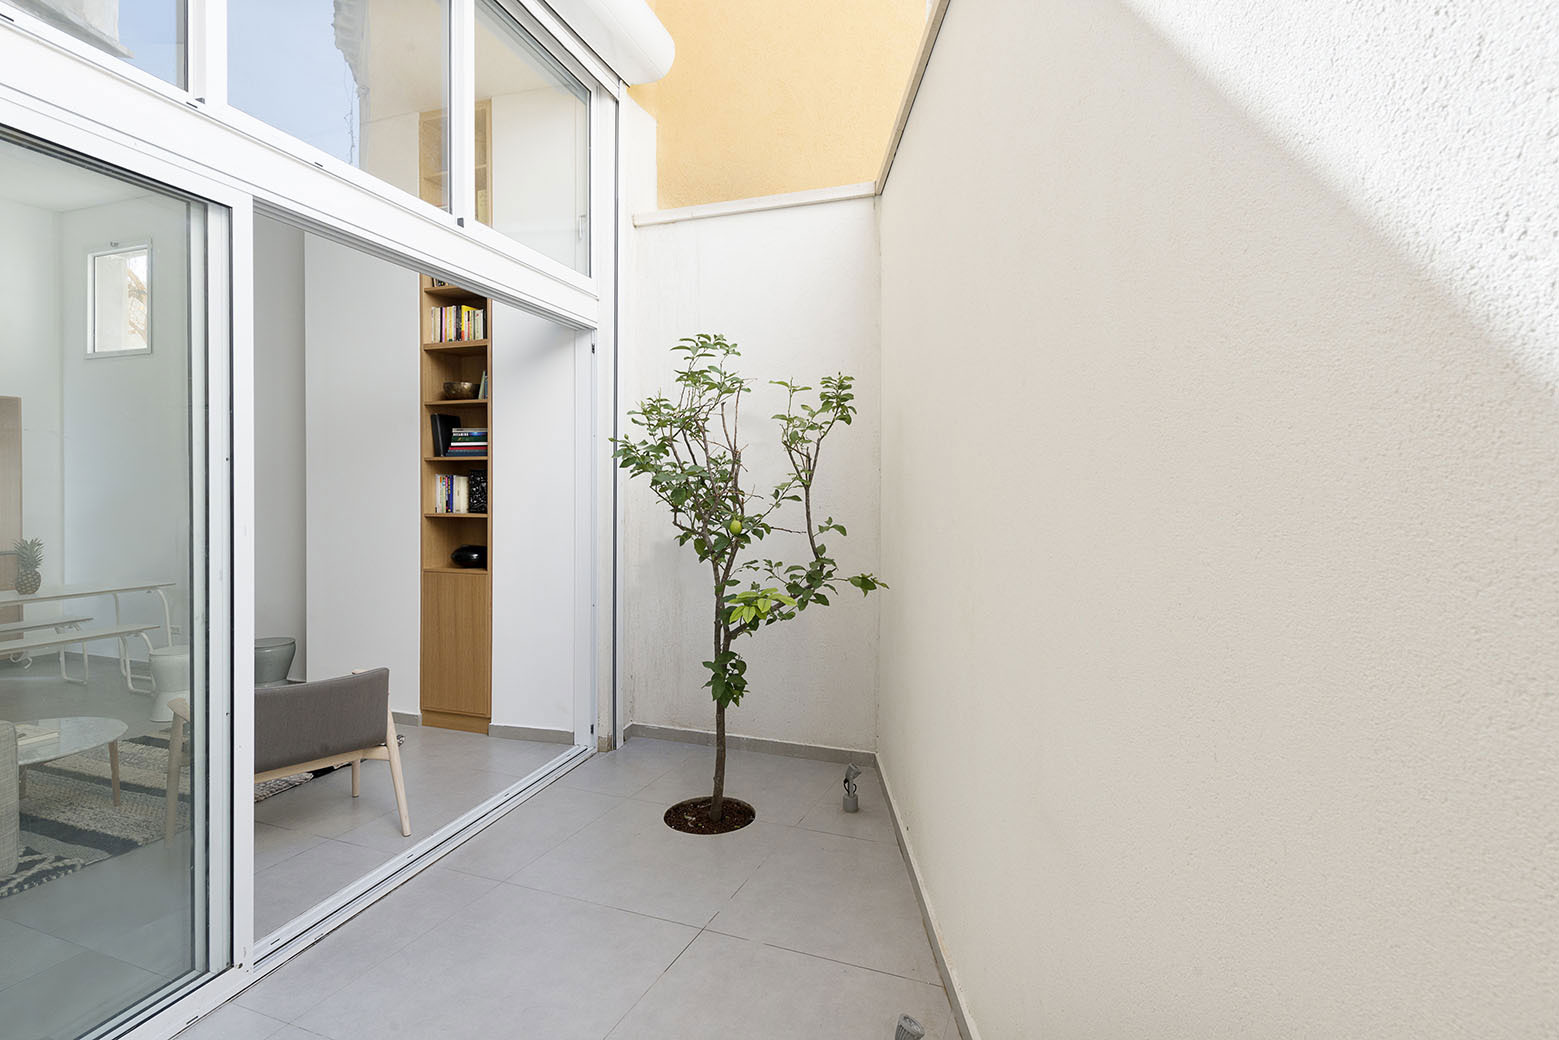 Adjusting a Mish-Mash of Small Rooms and Corridors into Jaffa Garden Apartment by Itai Palti-01